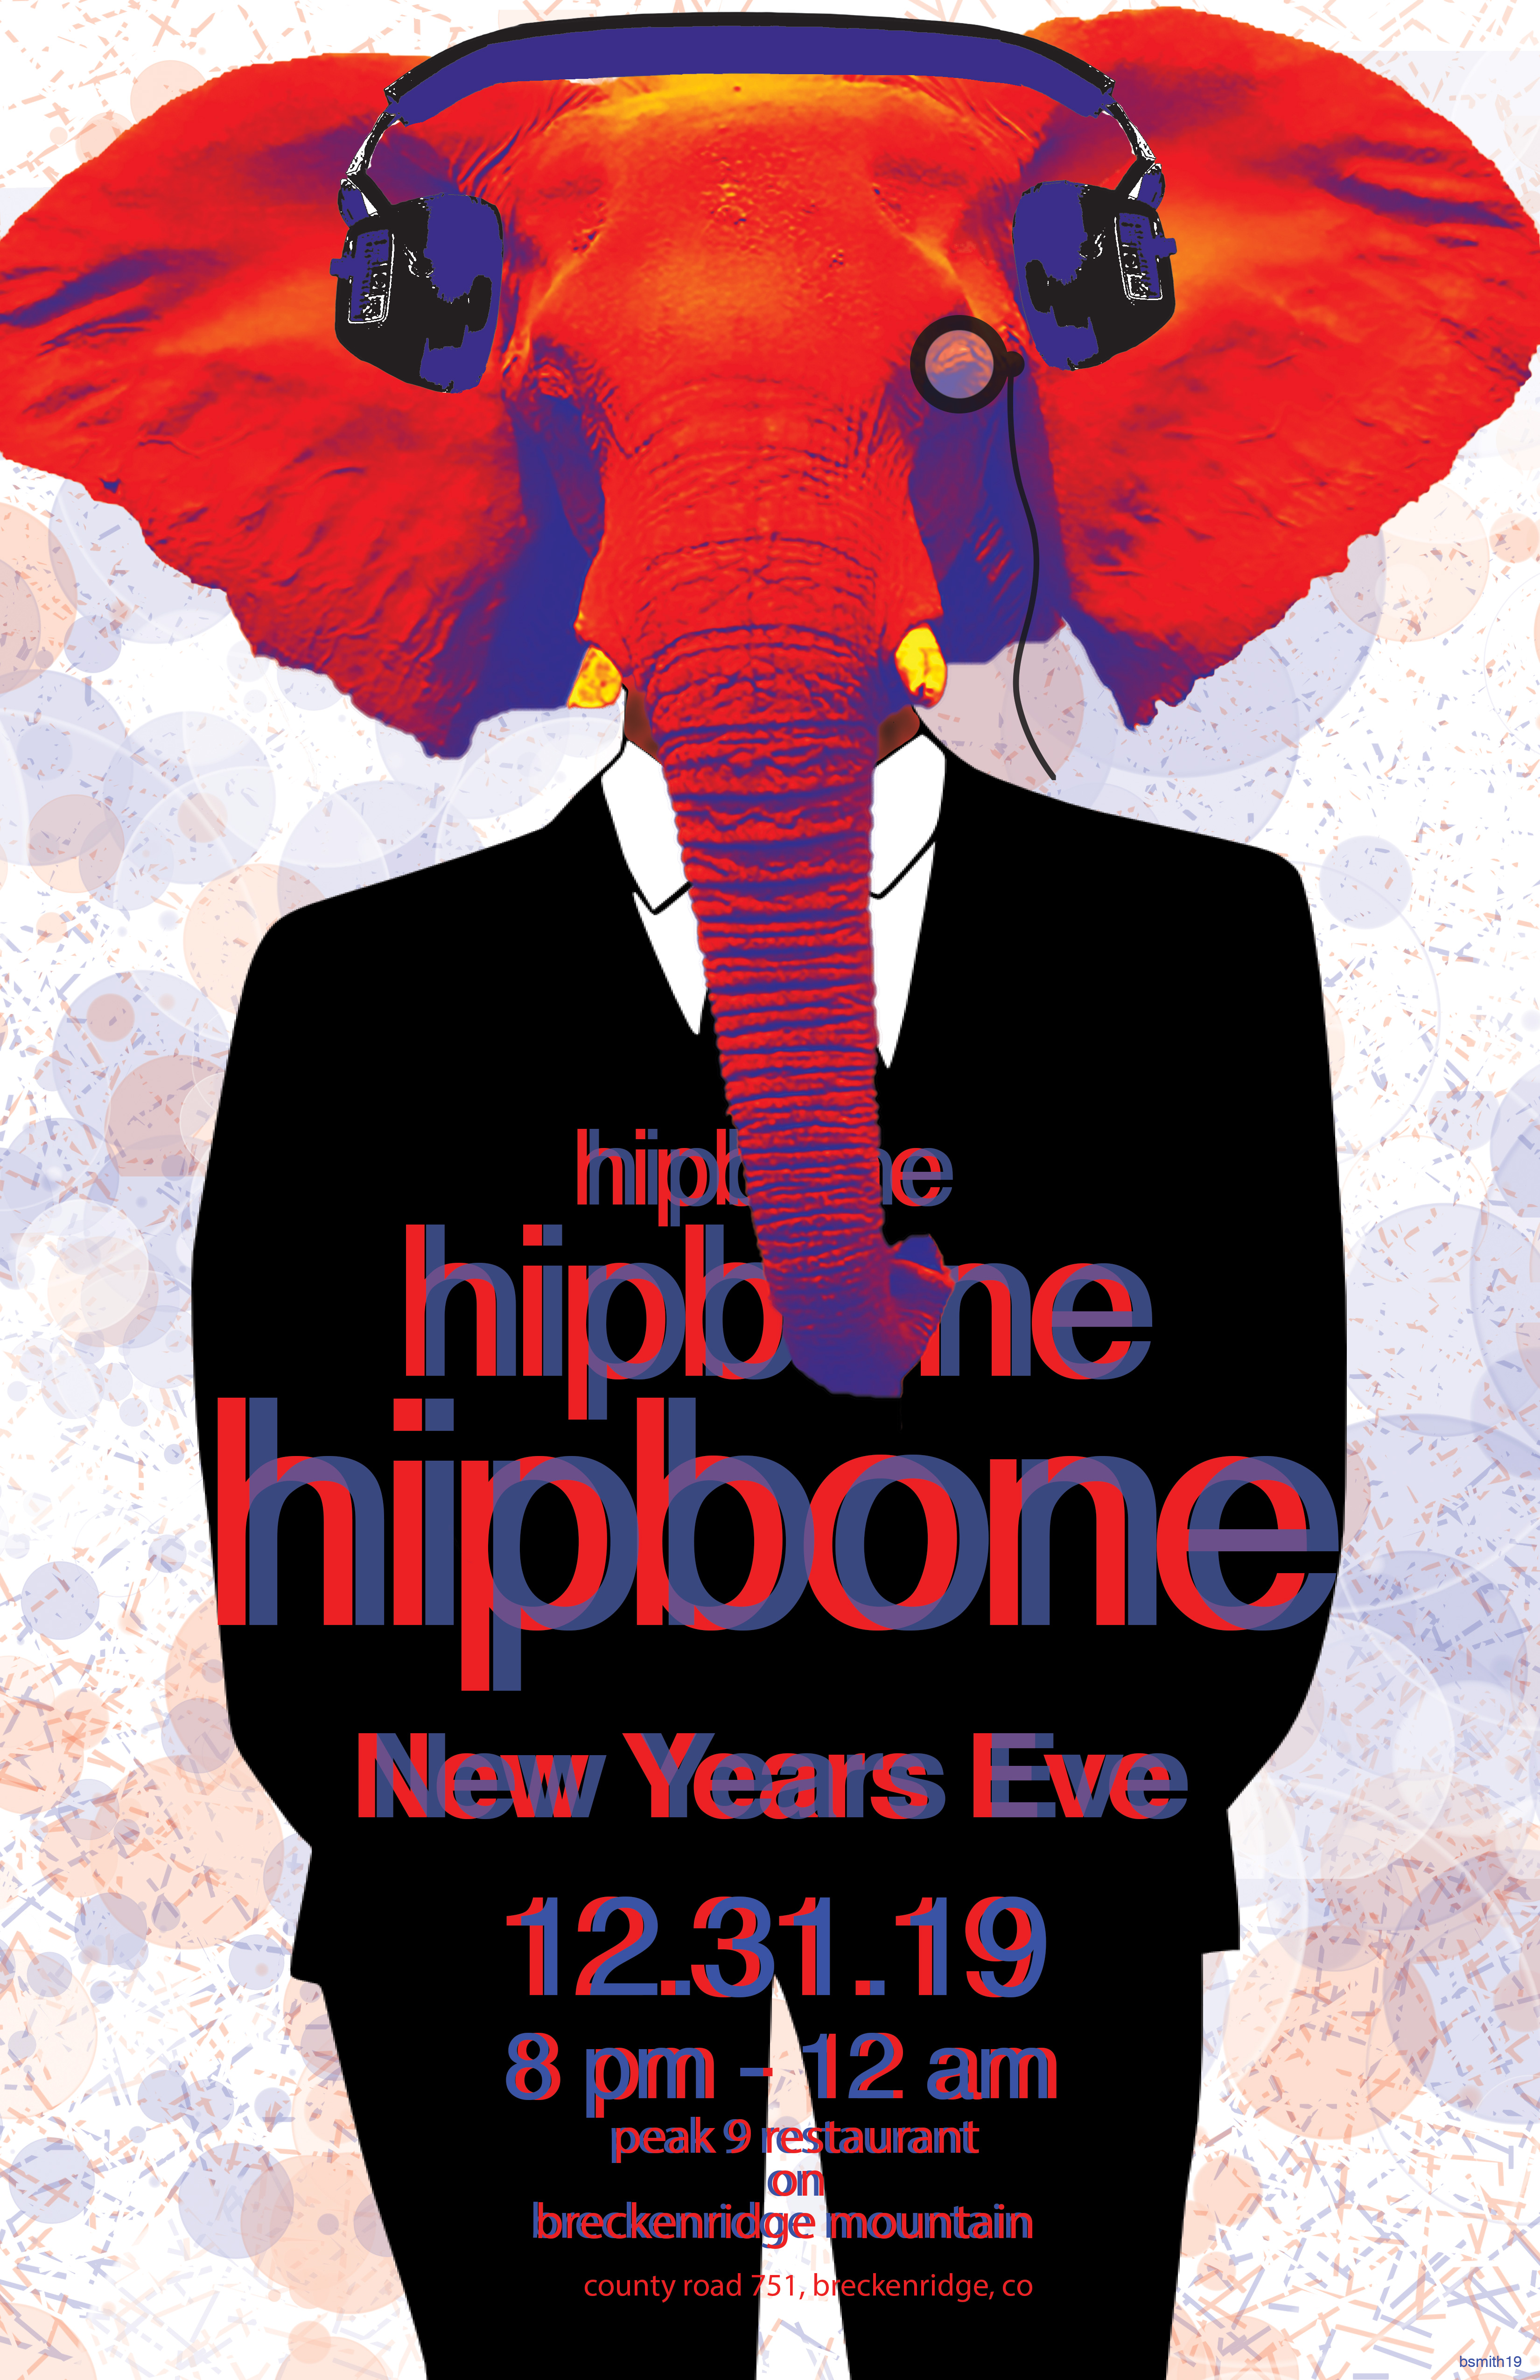 Hipbone New Years Eve 3